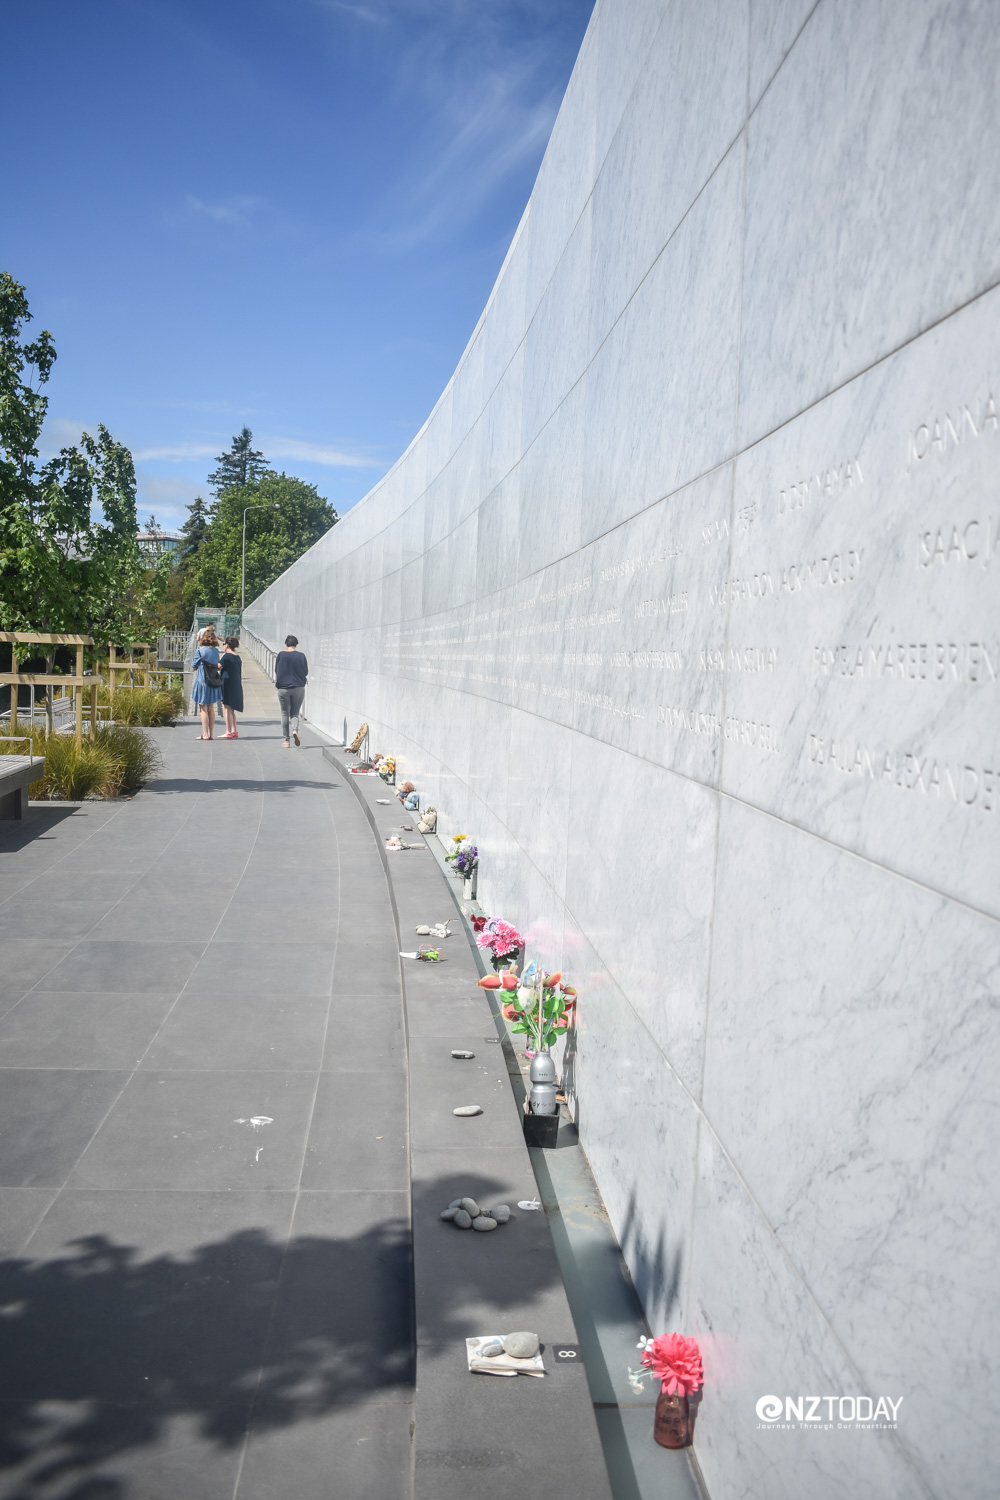 The names of those who died are engraved in the wall